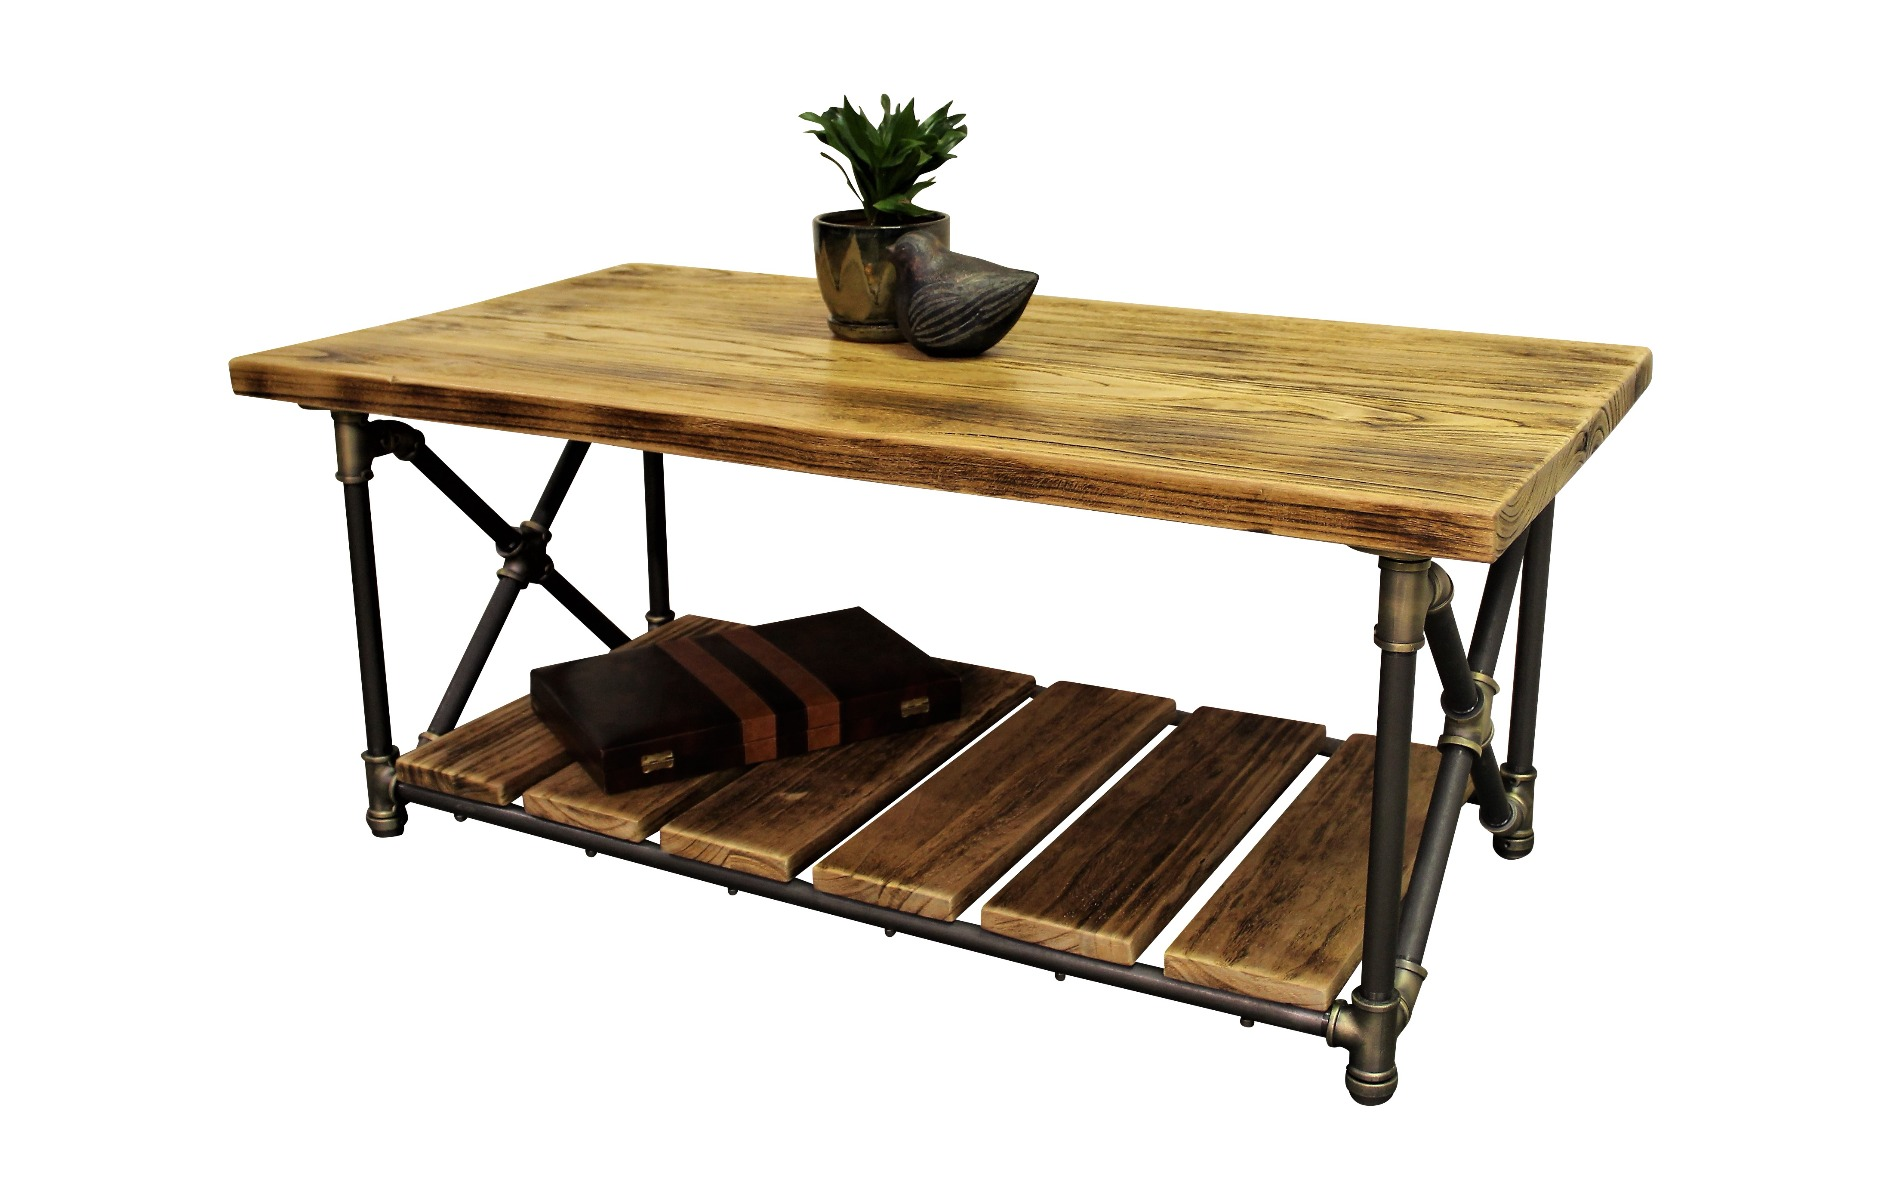 Houston Industrial Chic Coffee Table CTX1 BRGRNA 2